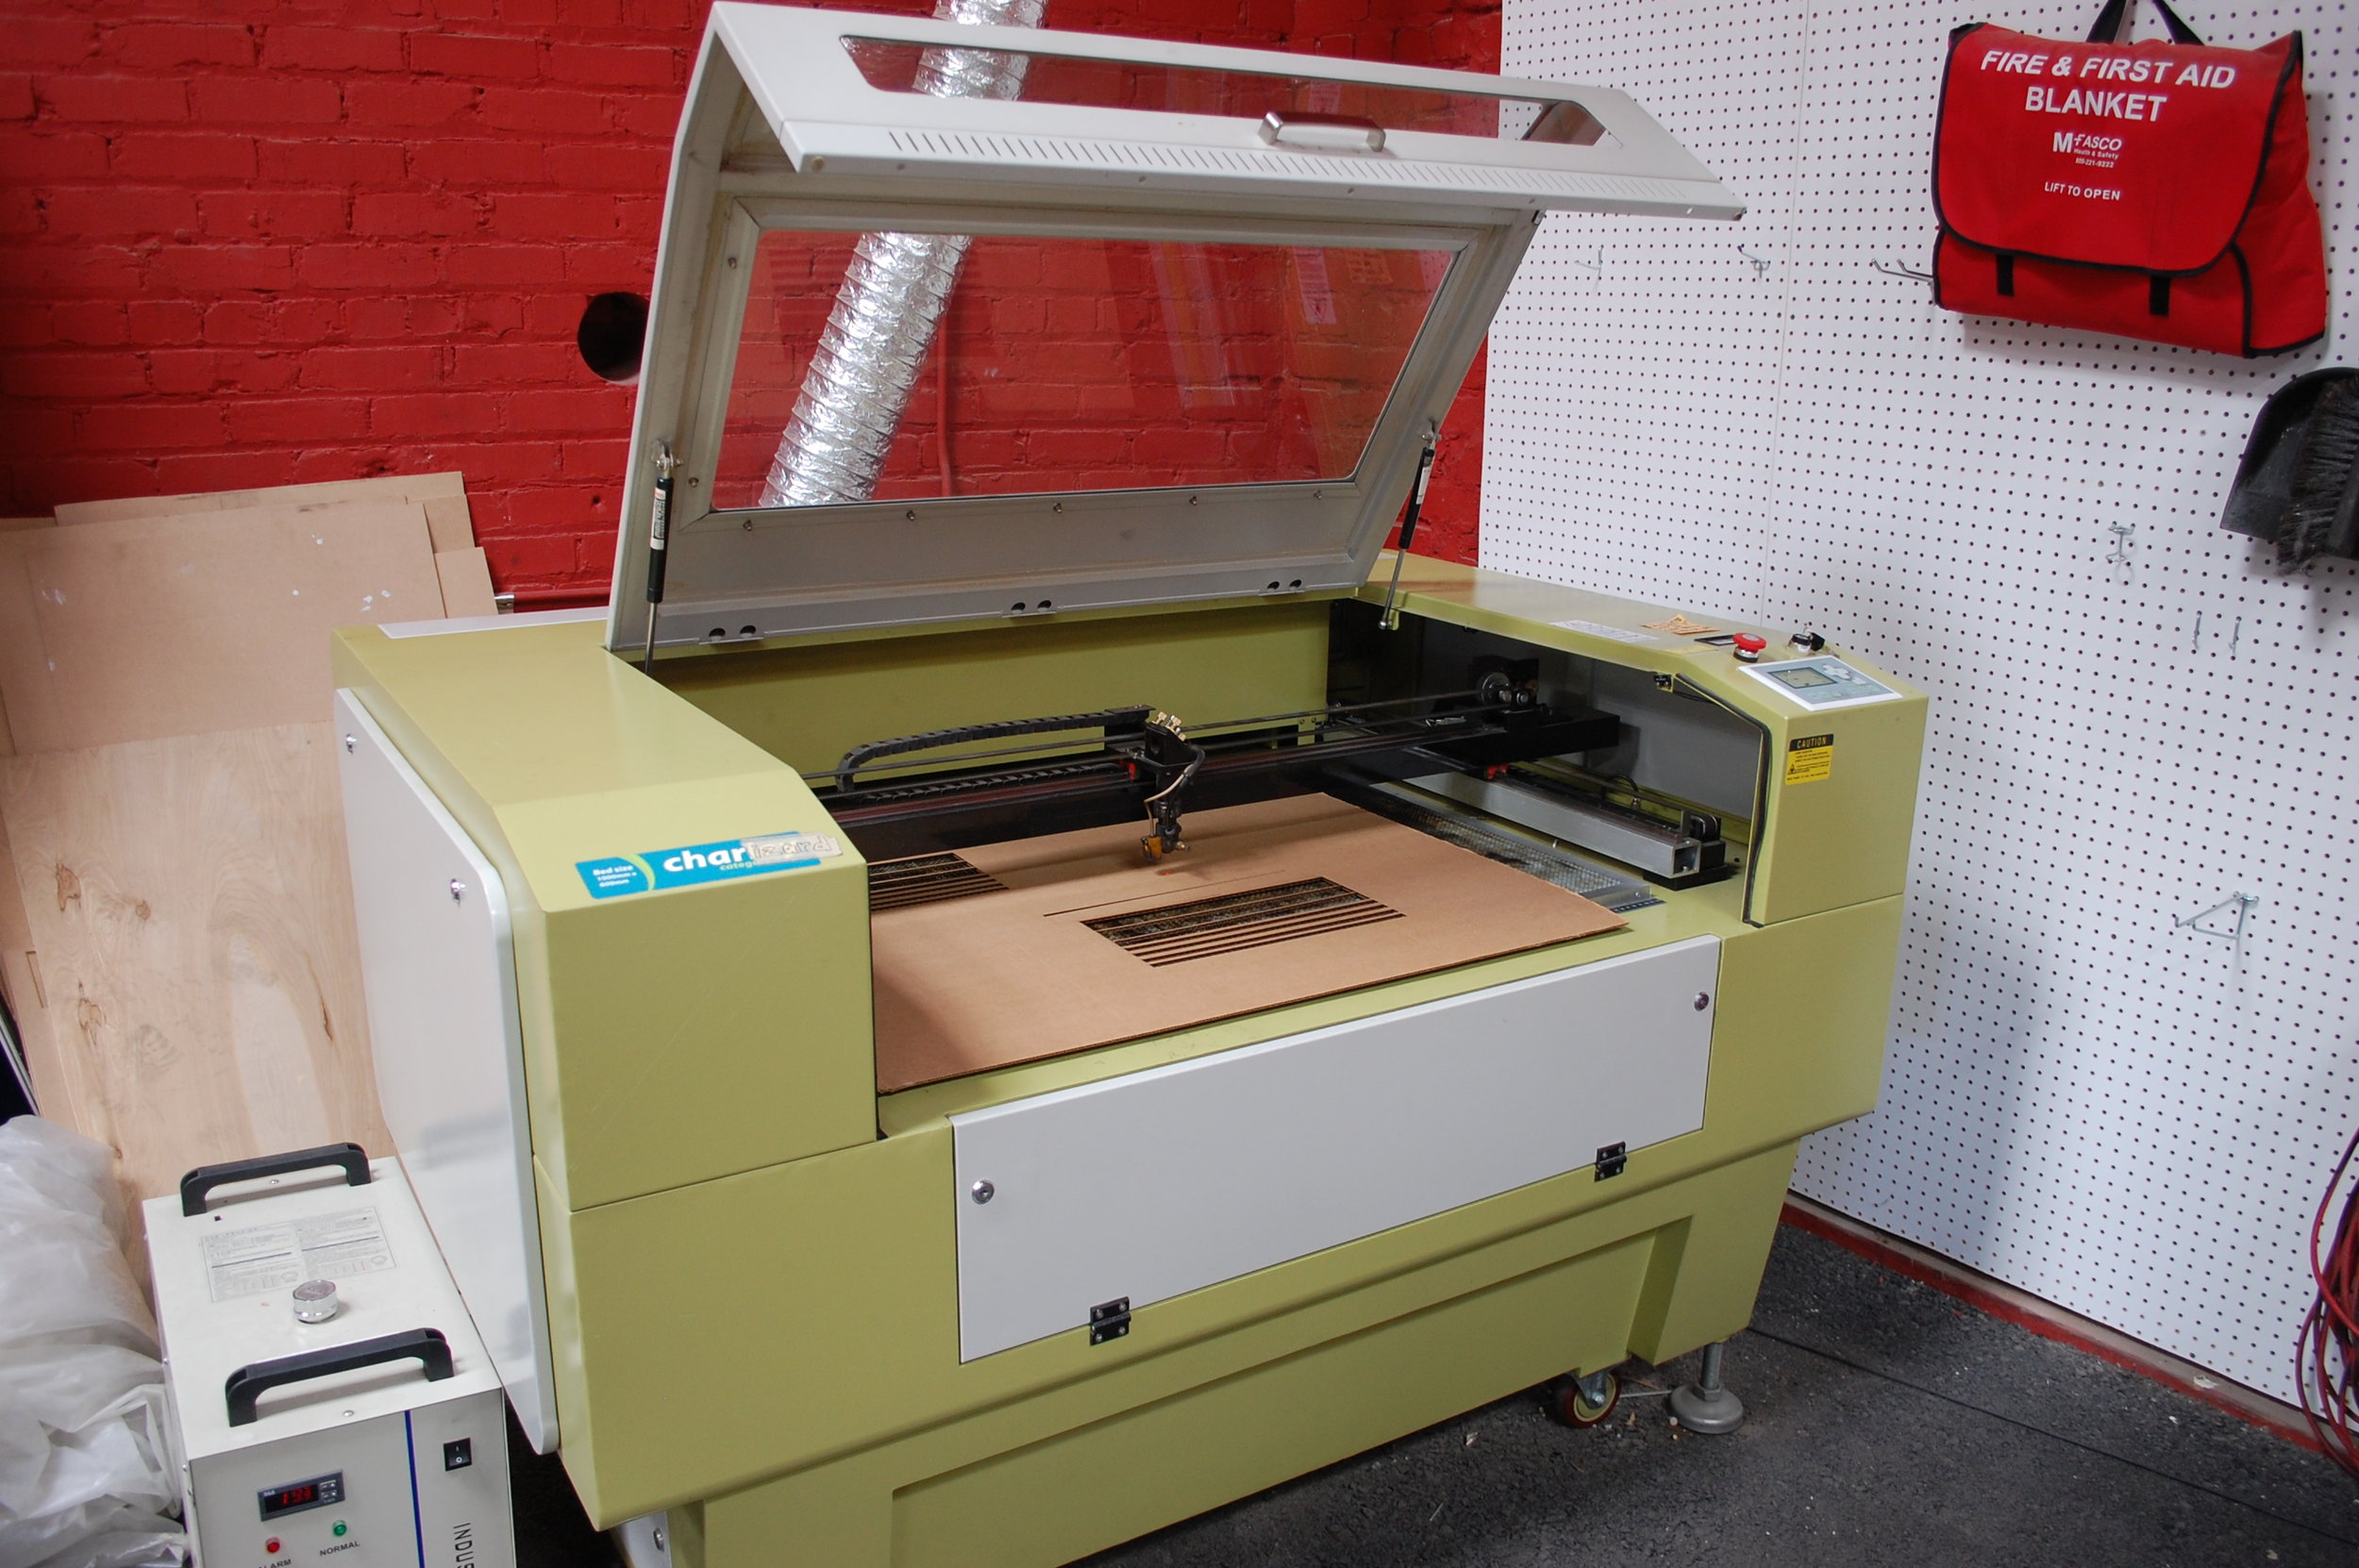 A cutter machine